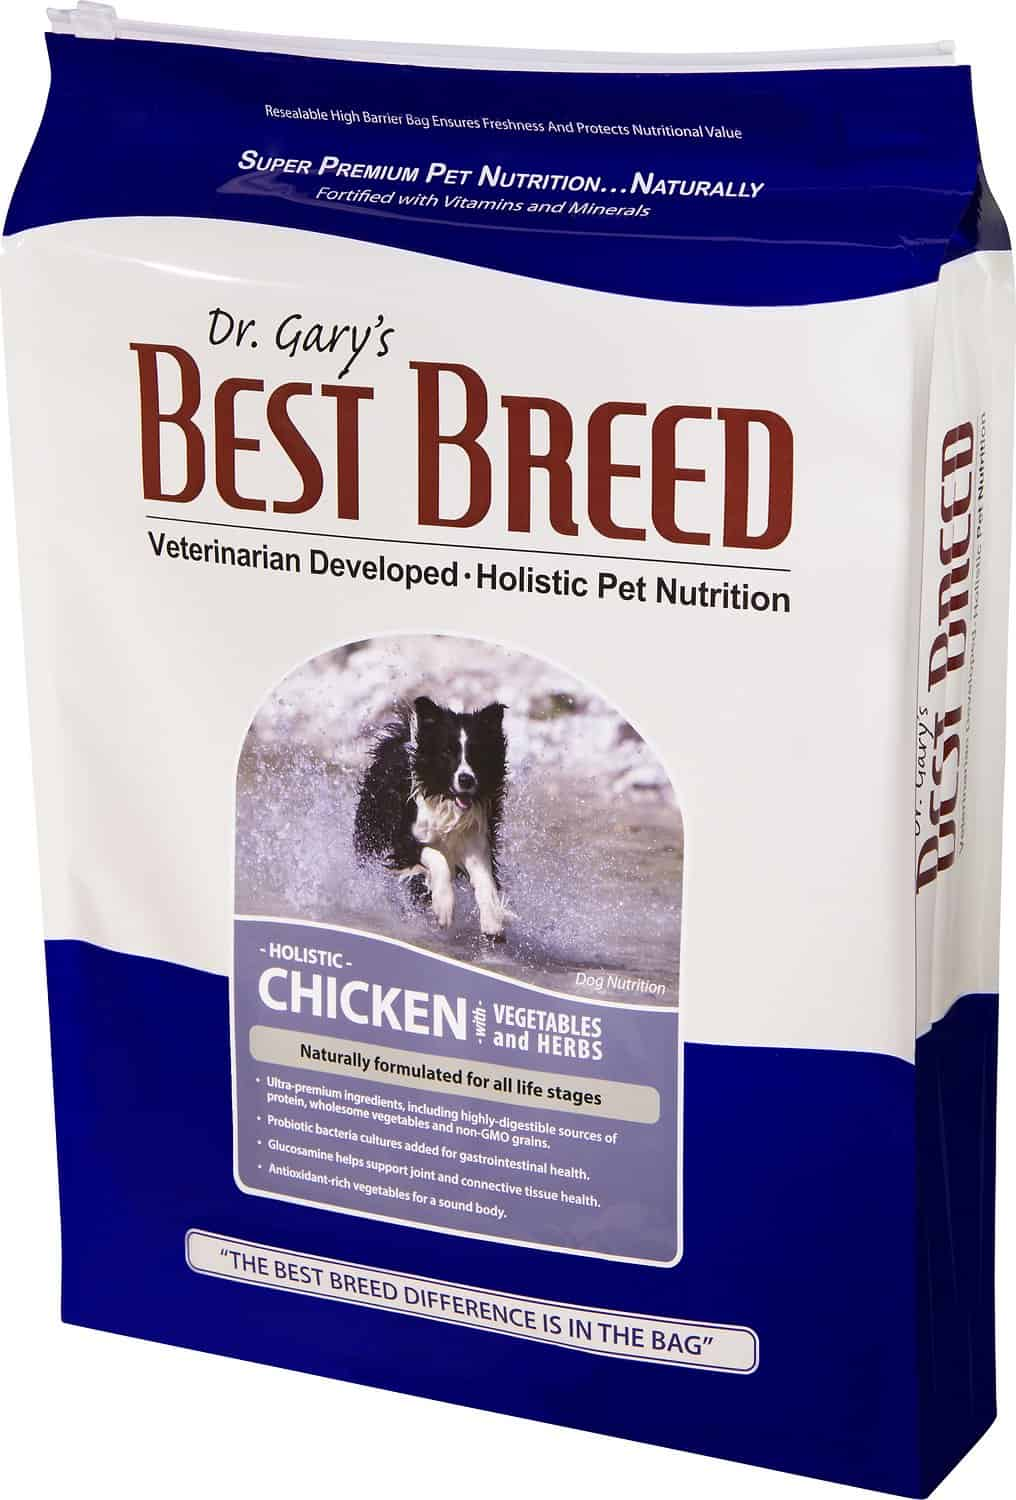 Dr. Gary's Best Breed Dog Food Review 2020: Best Holistic Pet Food? 12